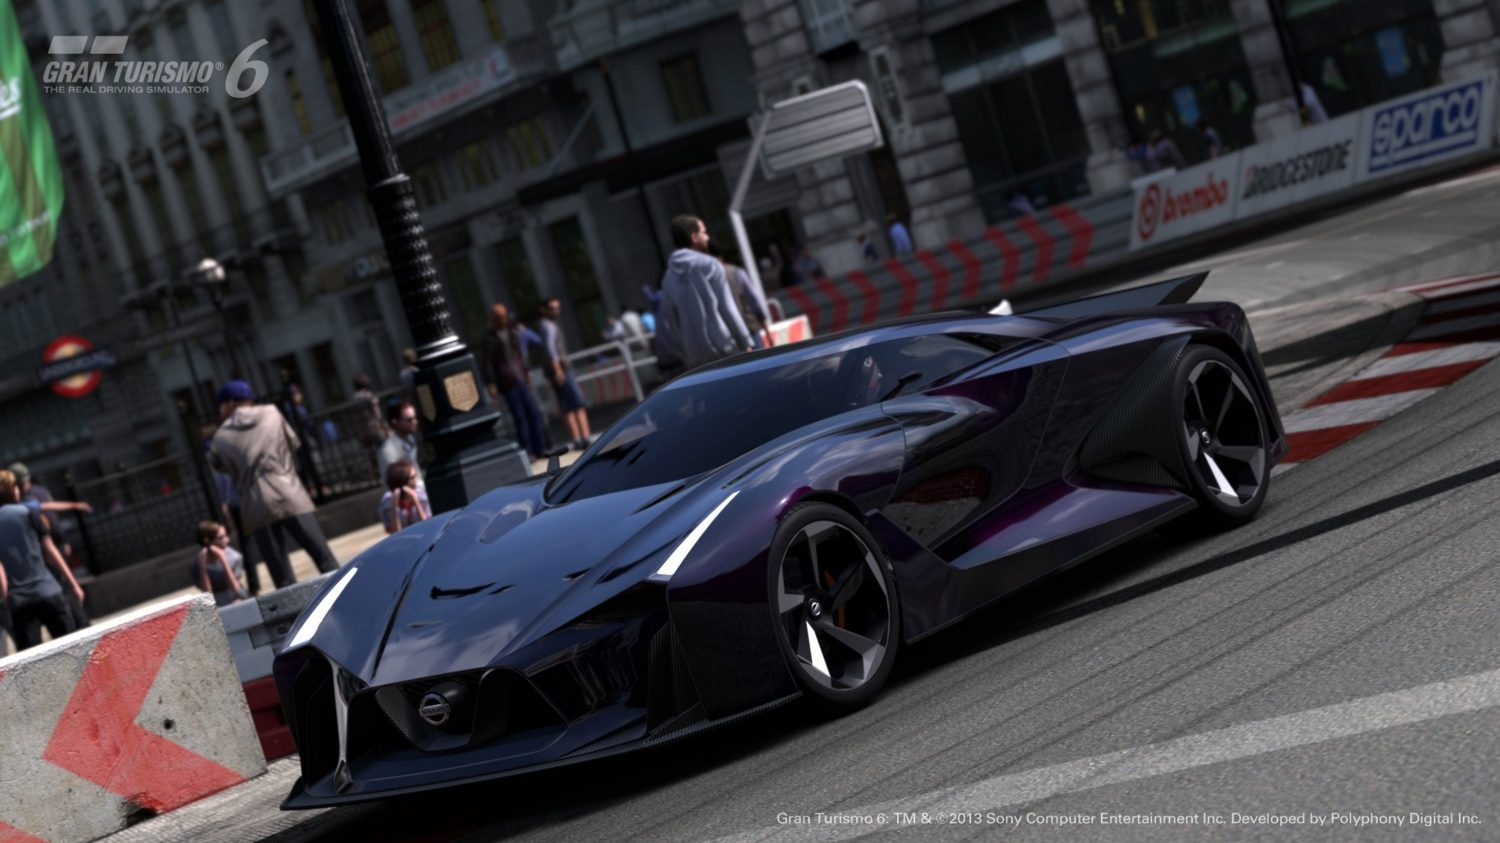 Nissan Concept 2020 Vision Gran Turismo low 3/4 city street.